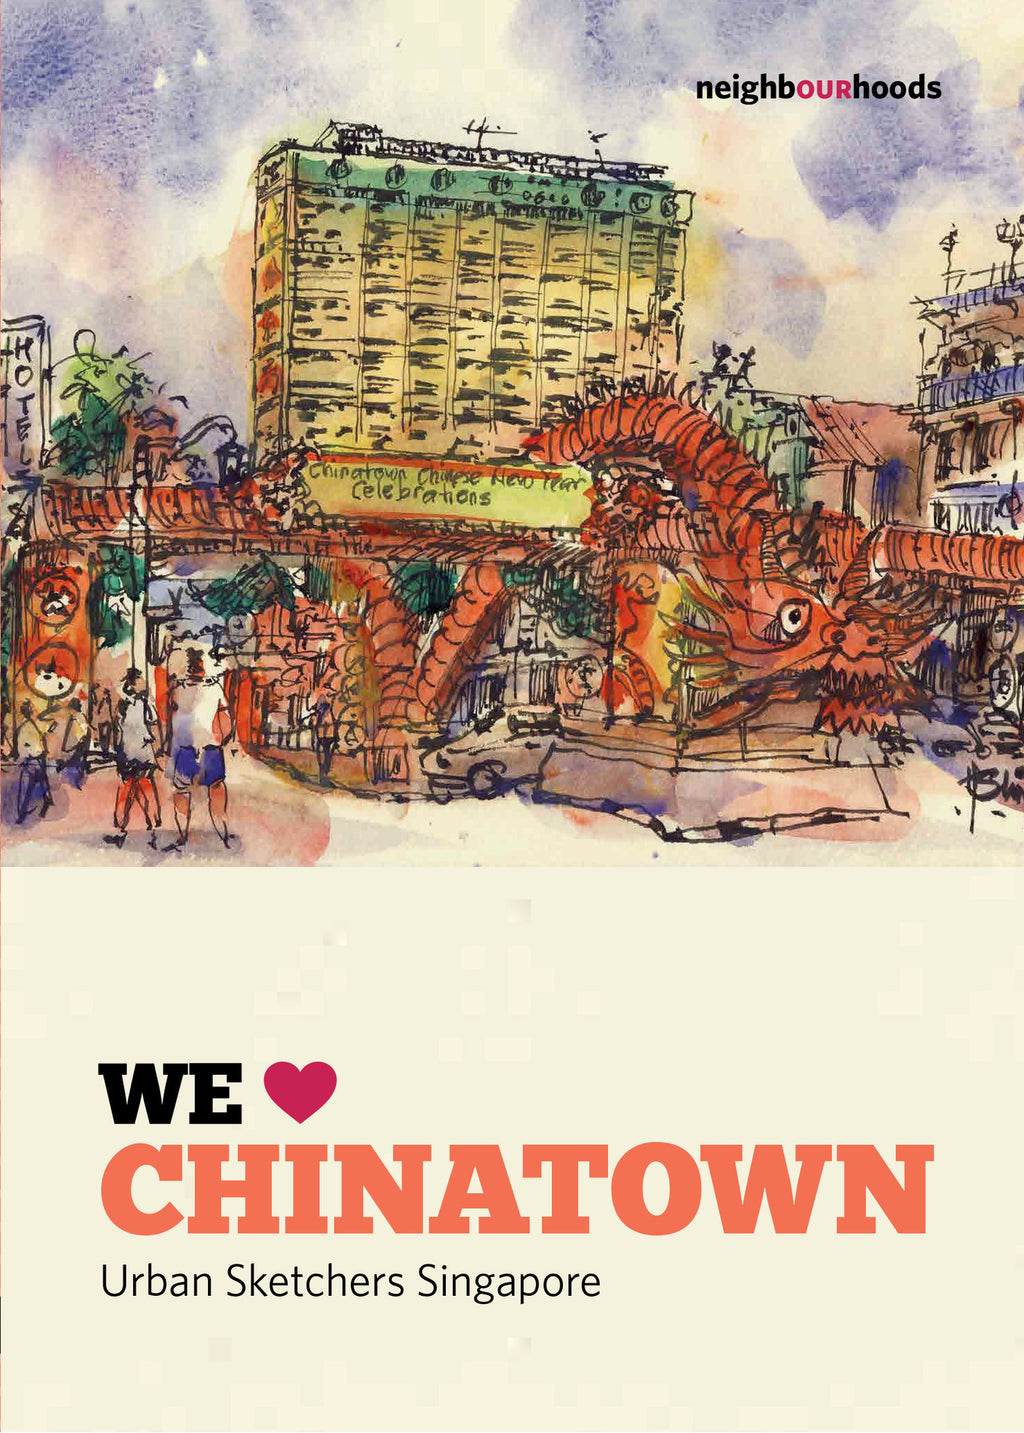 Our Neighbourhoods: We ♥ Chinatown